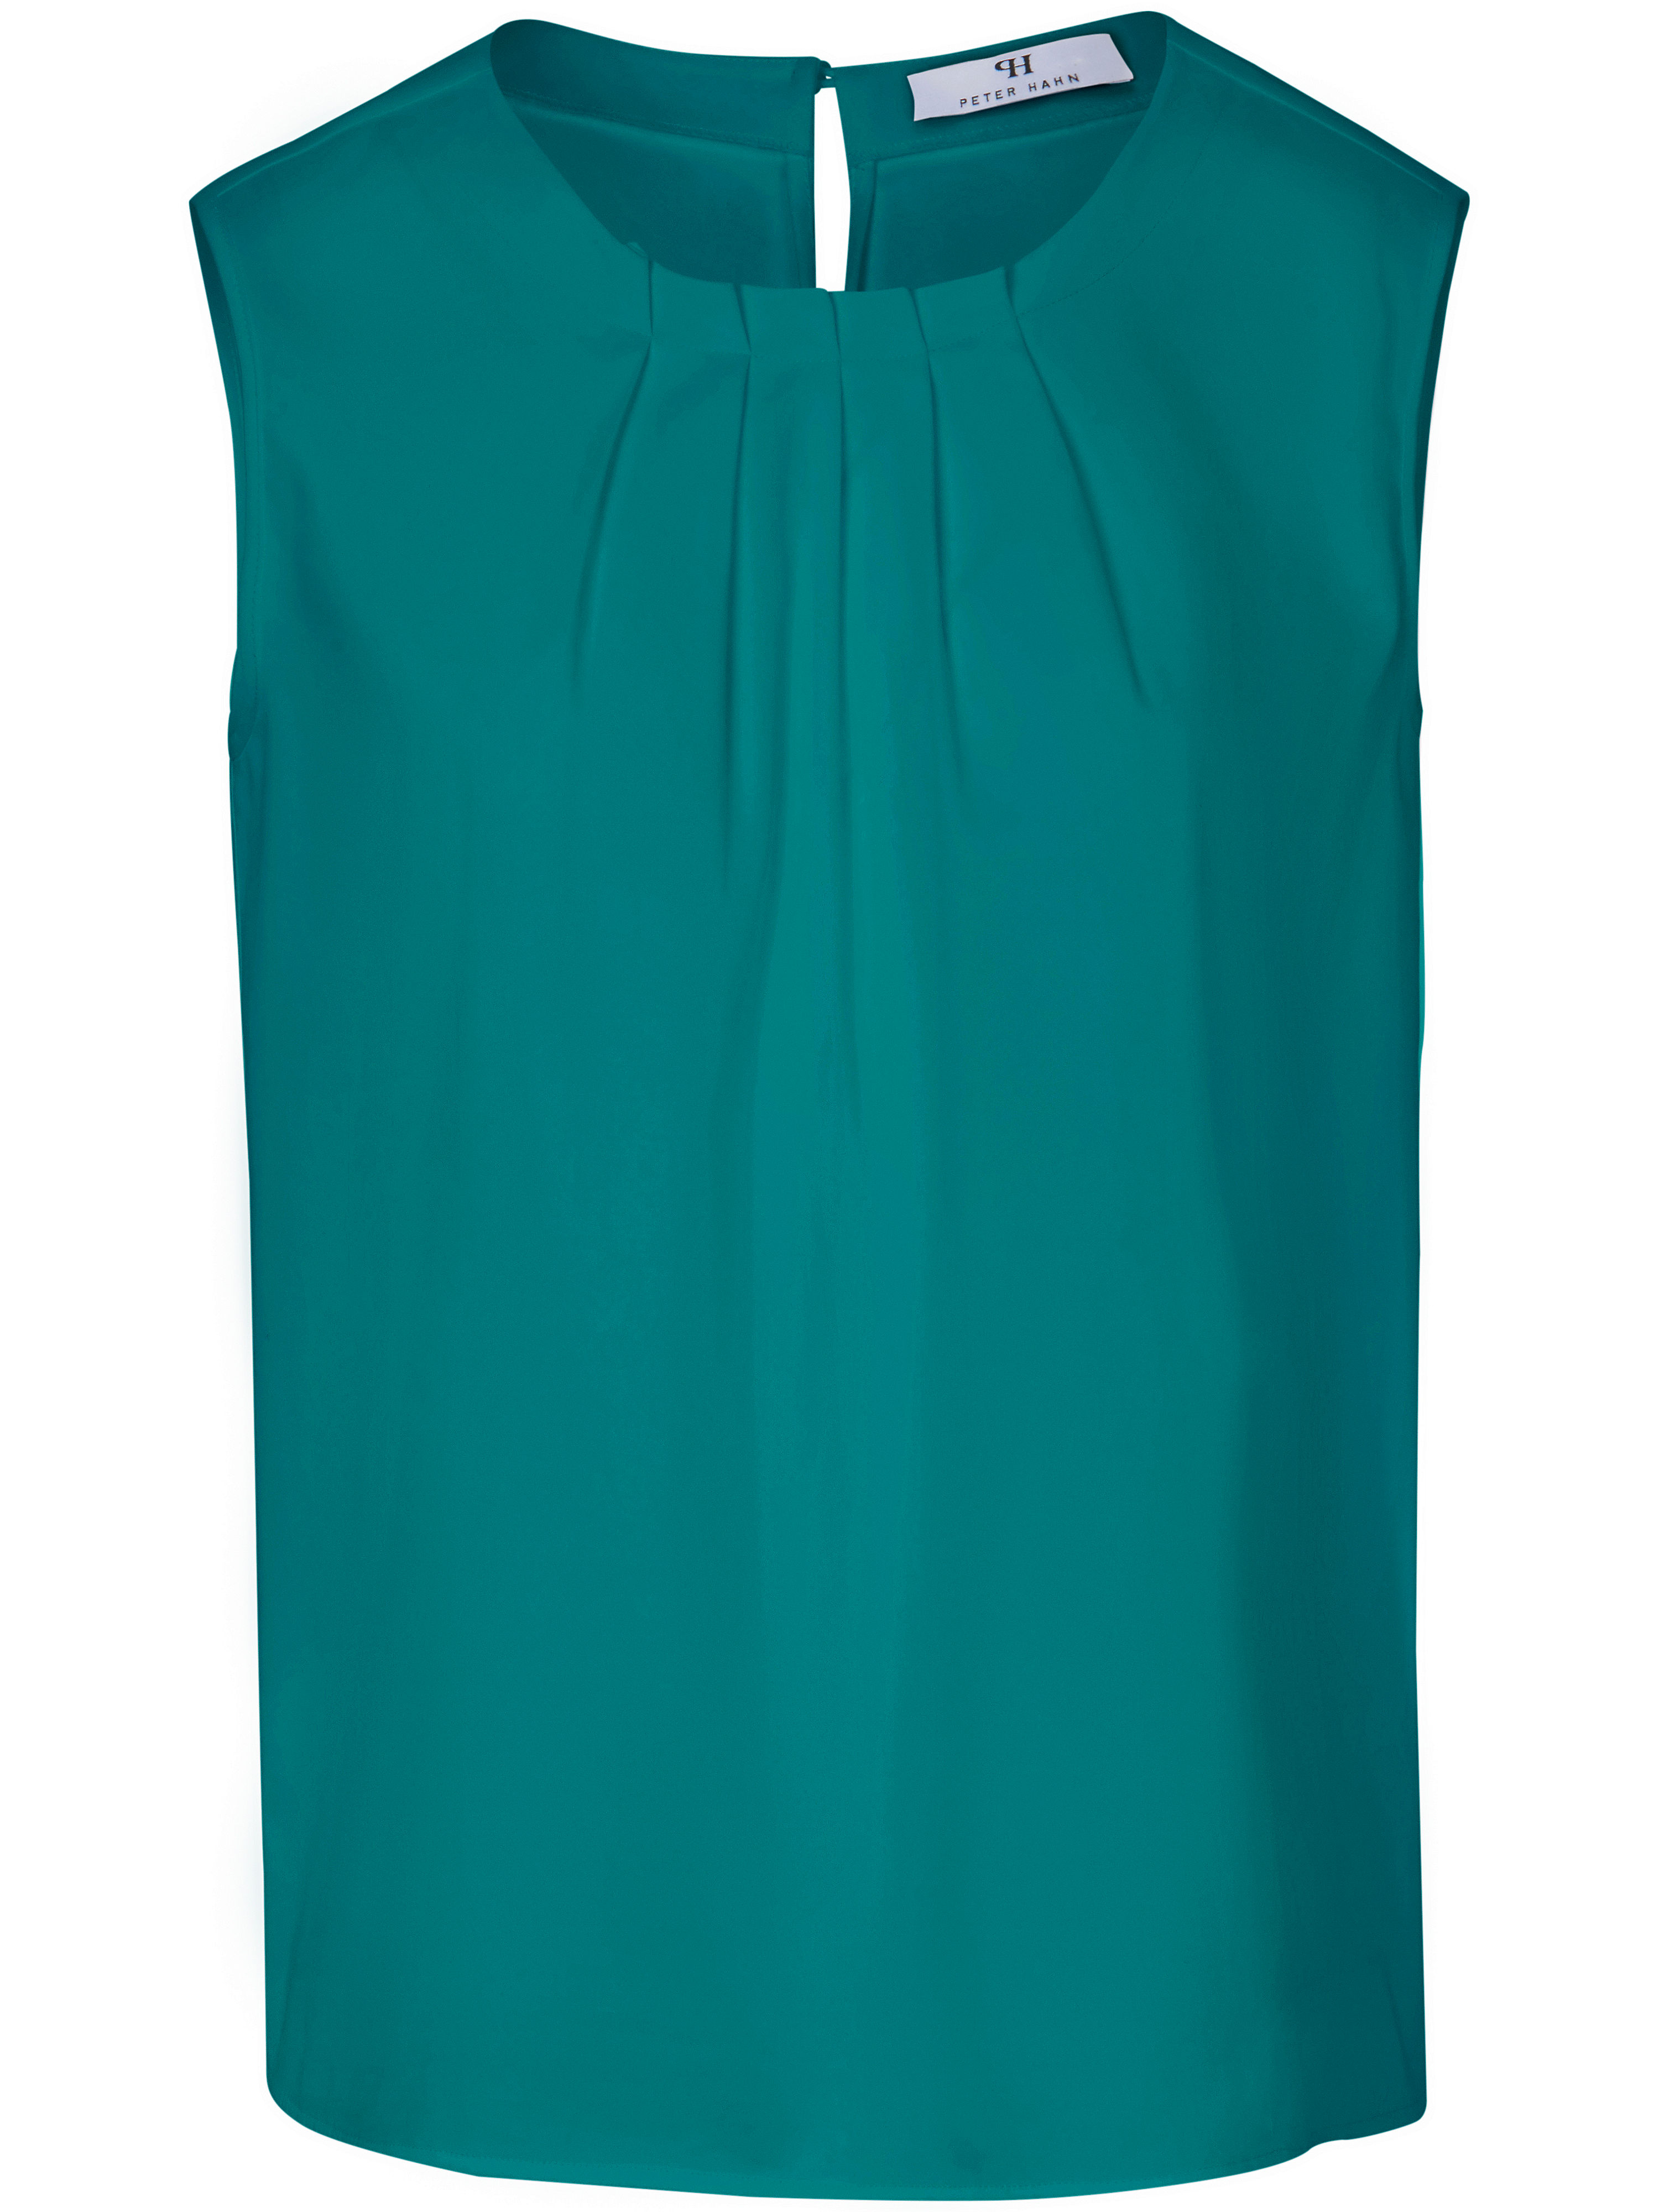 Turquoise Peter Turquoise Top Top Hahn Peter Turquoise Hahn Peter Top Hahn Peter Hahn UMVpSz